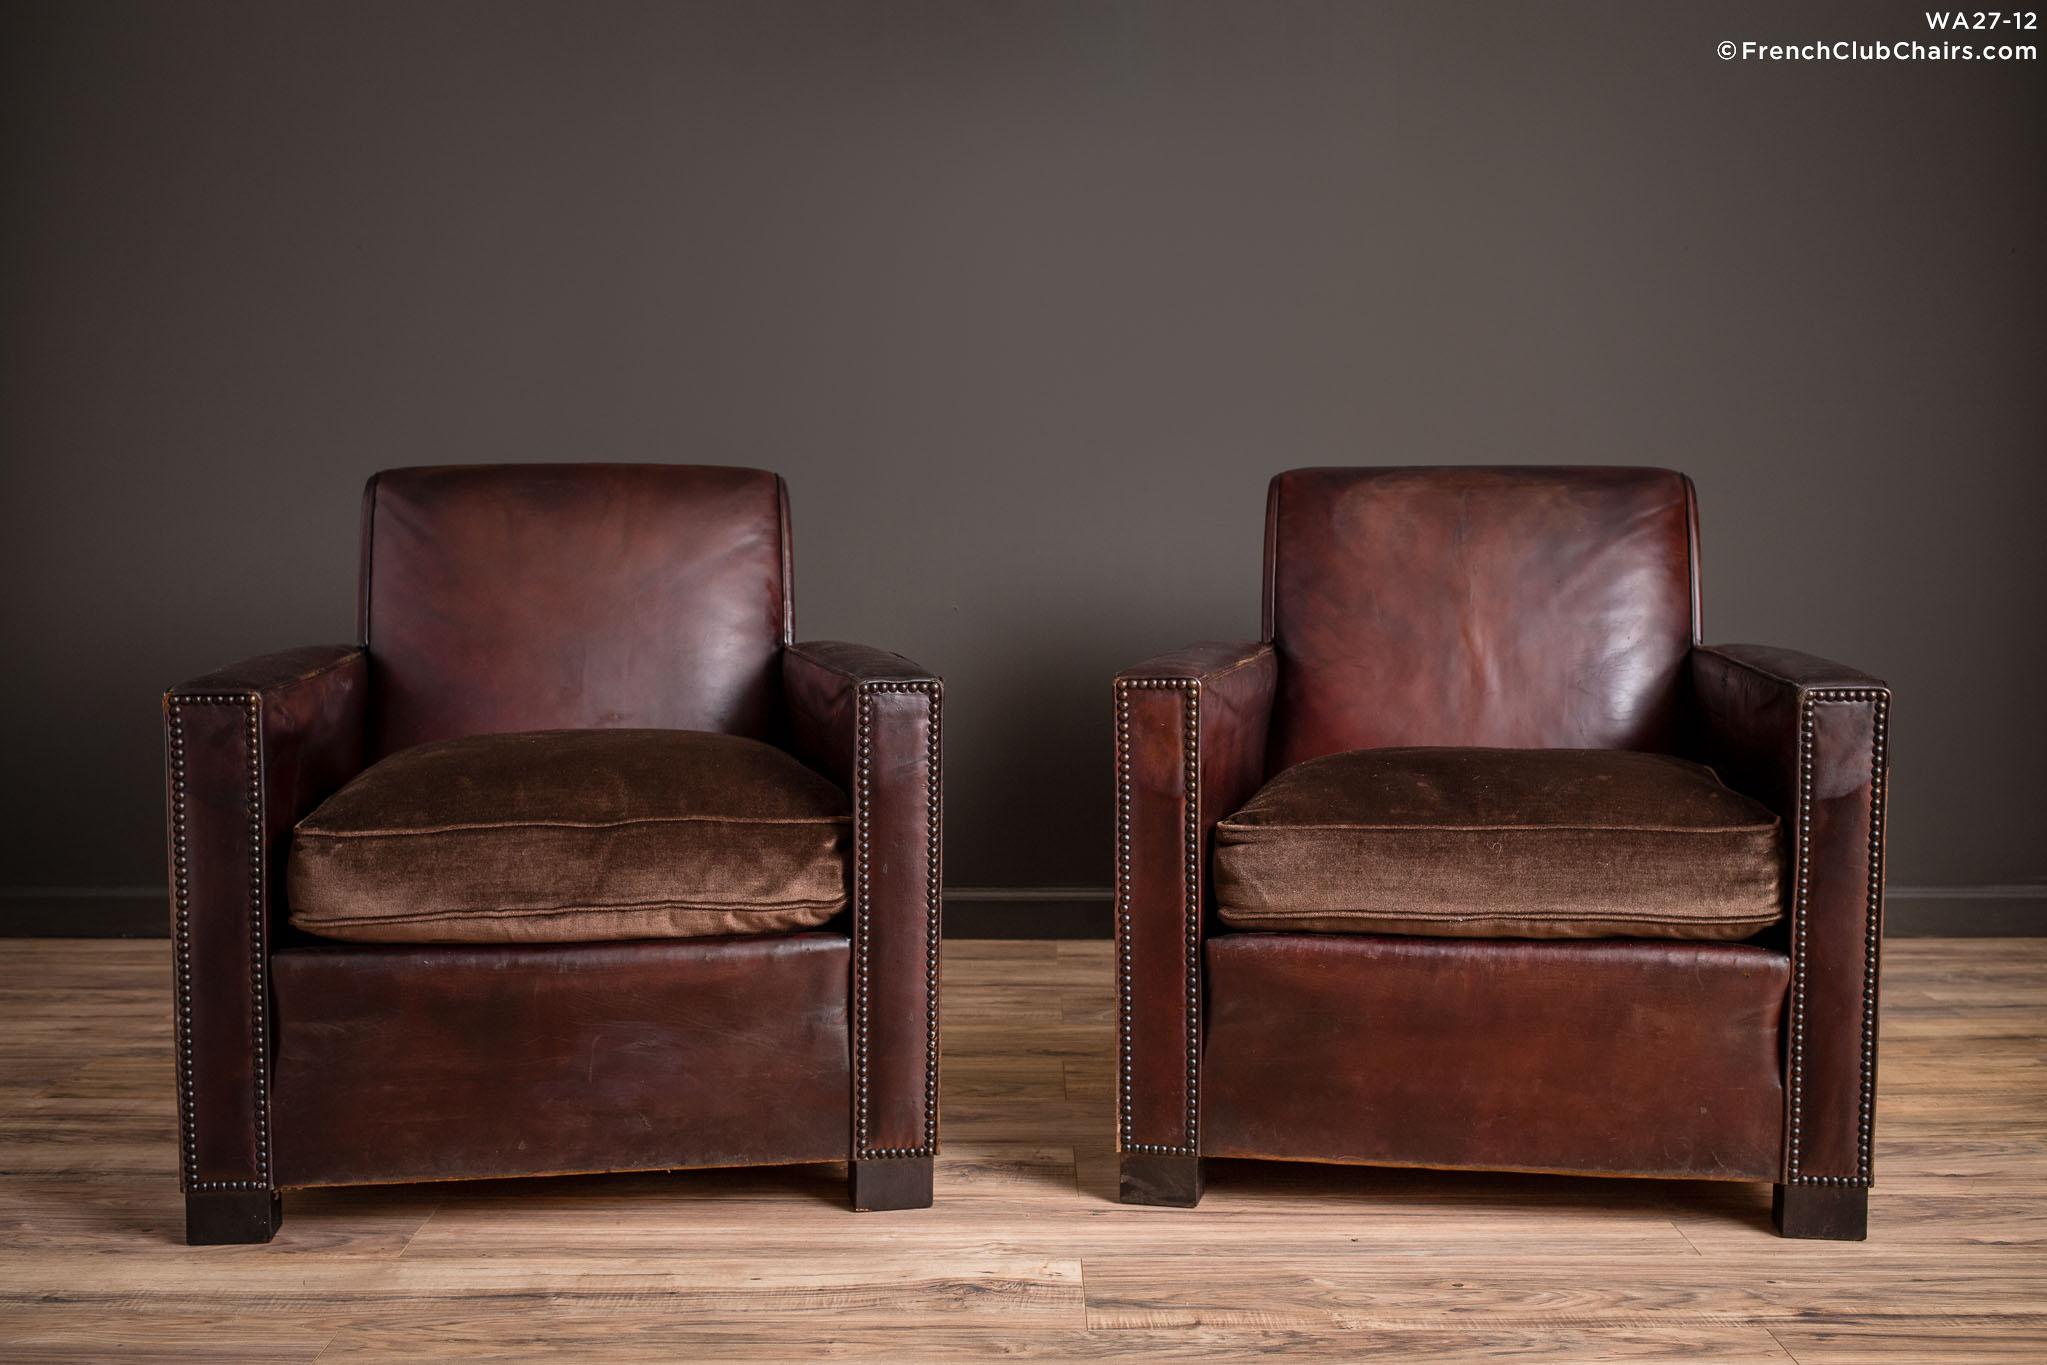 WA_27-12_St_Tropez_Dark_Lounge_Square_Pair_R_1TQ-v01-williams-antiks-leather-french-club-chair-wa_fcccom